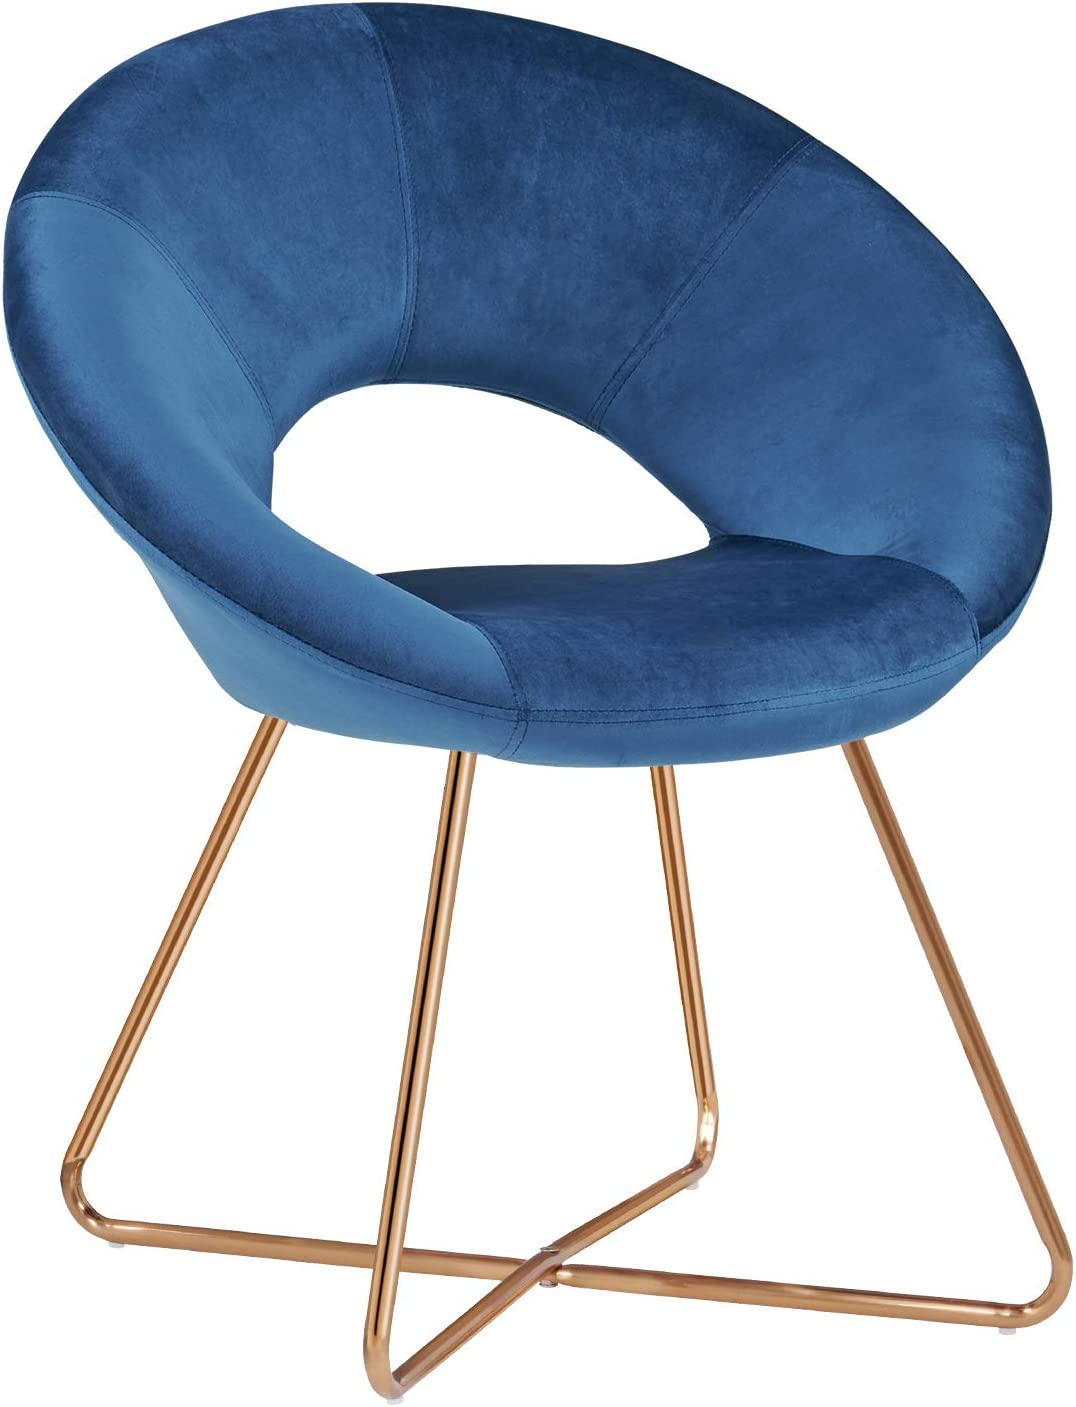 Duhome Modern Accent Velvet Chairs Dining Chairs Single Sofa Comfy Upholstered Arm Chair Living Room Furniture Mid-Century Leisure Lounge Chairs with Golden Metal Frame Legs 1 PCS Blue